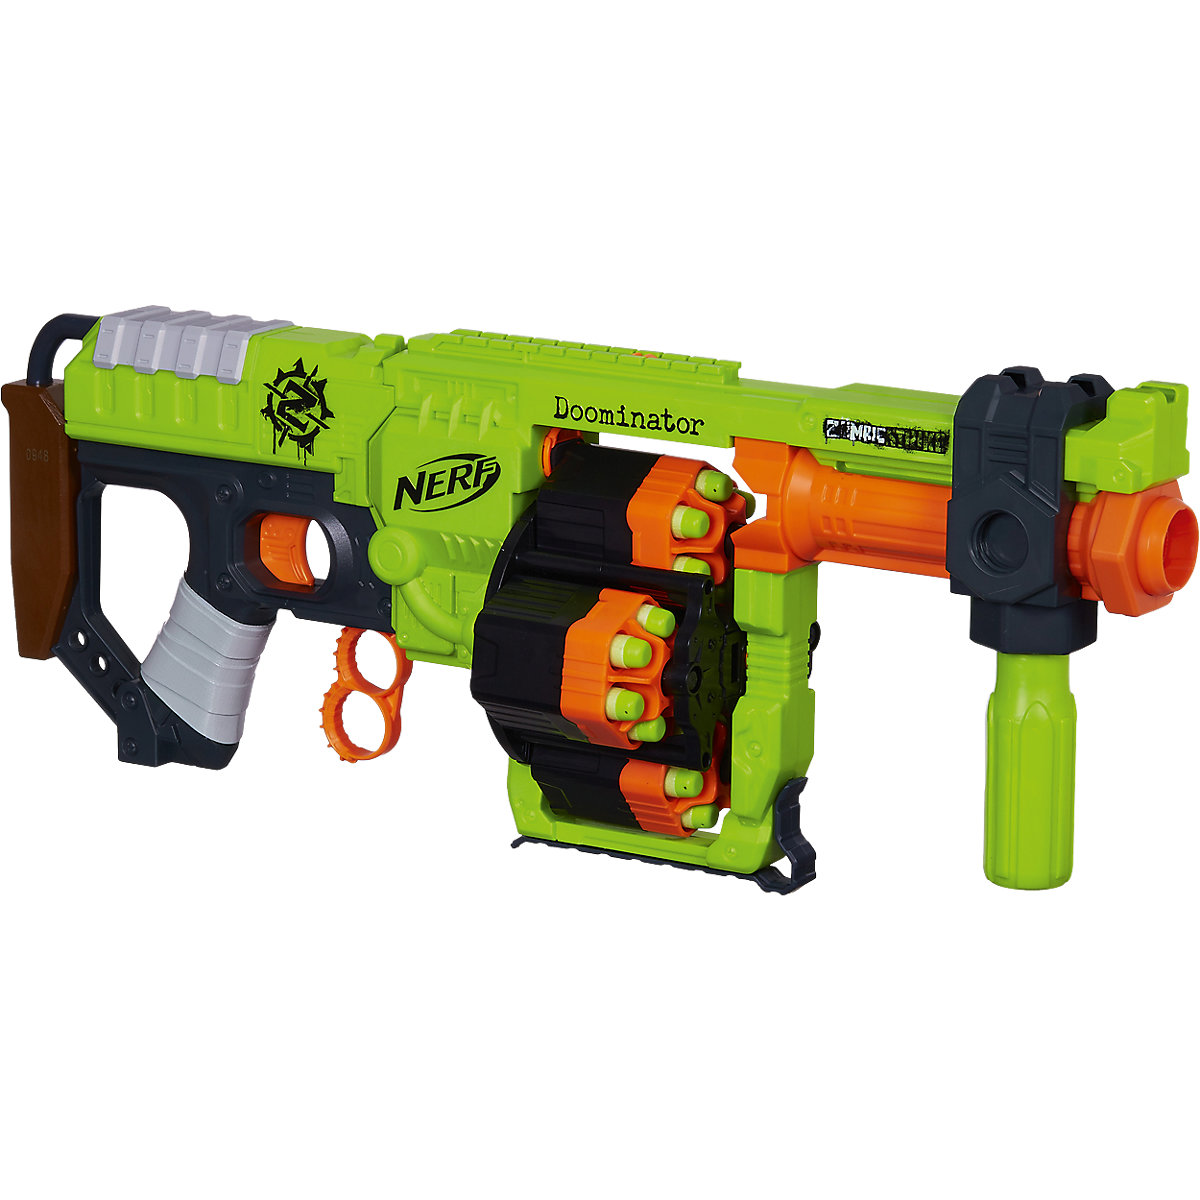 HASBRO Toy Swords 4156395 Boys weapon sword nerf blaster blasters toys game play boy outdoor fun sport toy guns nerf 3550830 children kids toy gun weapon blasters boys shooting games outdoor play